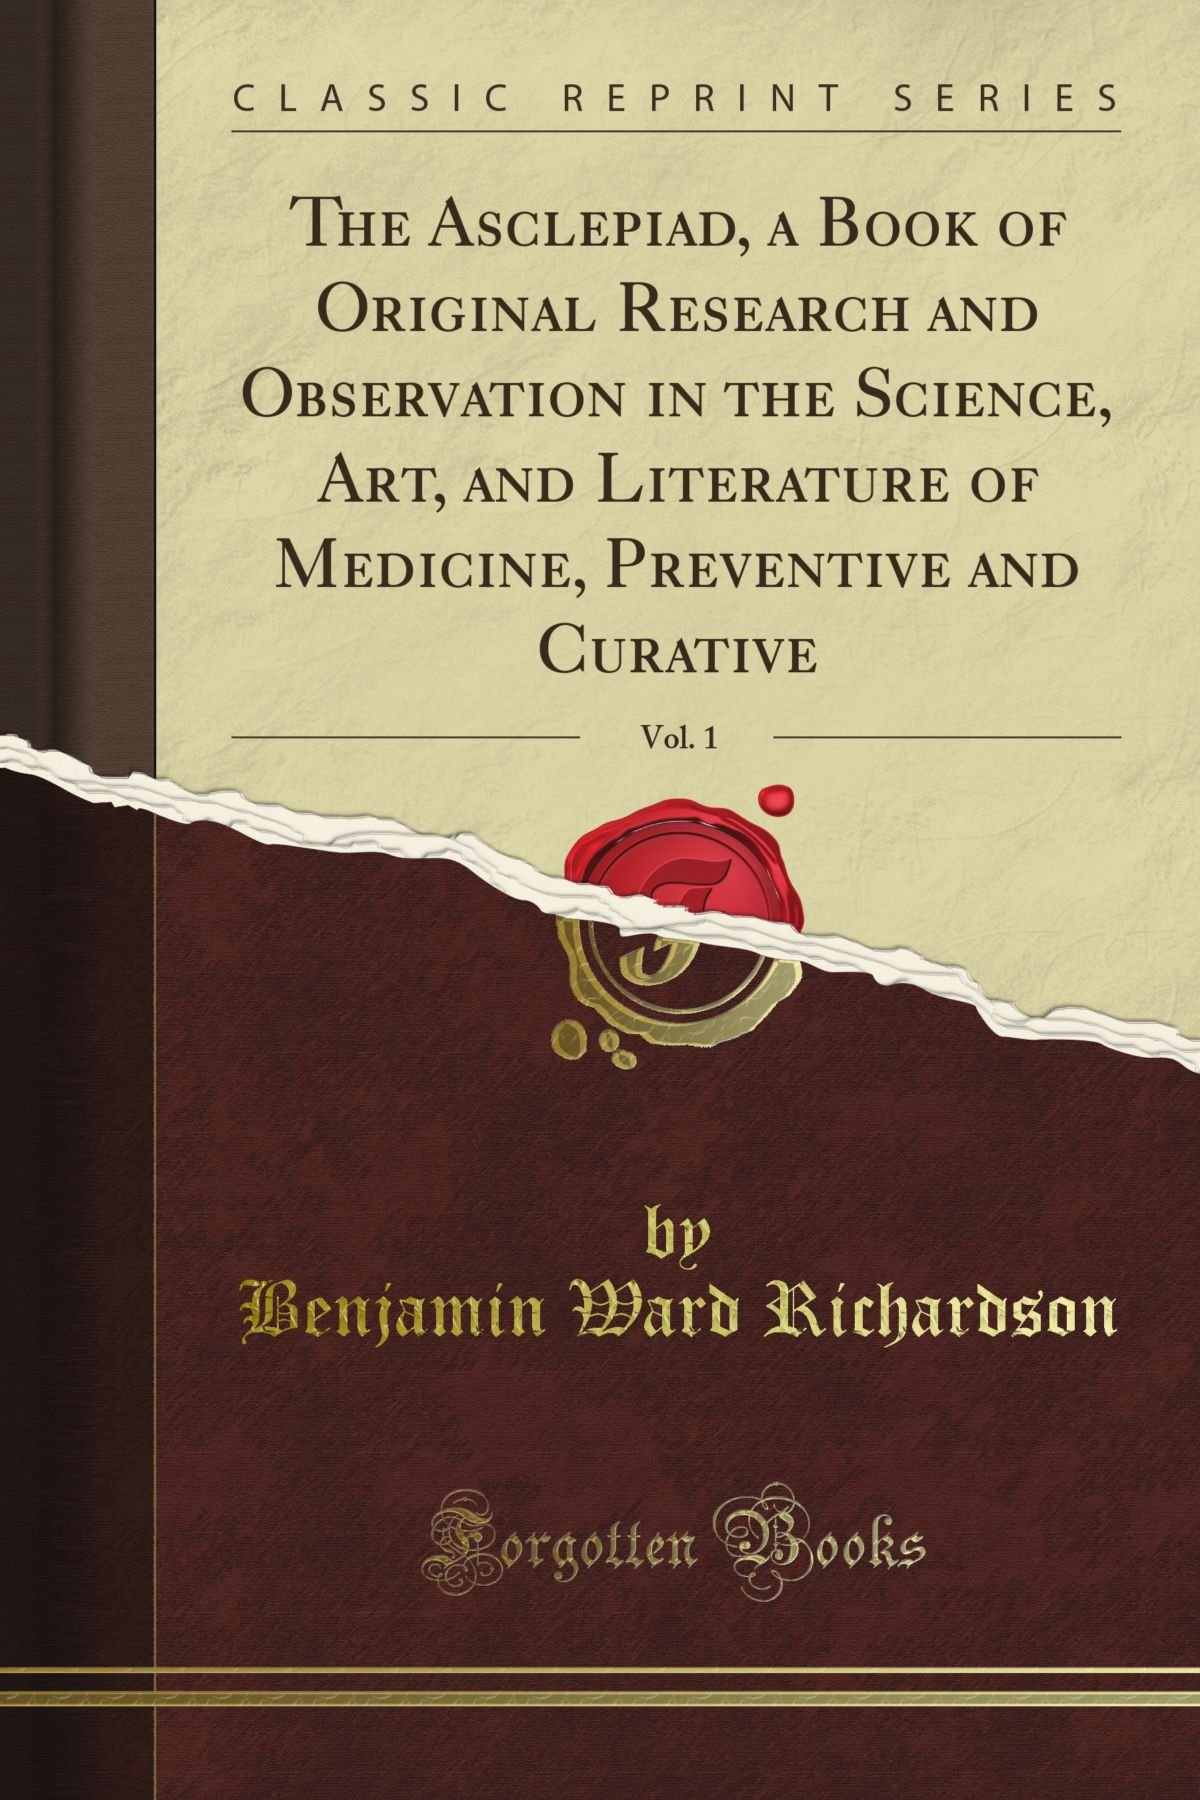 Download The Asclepiad, a Book of Original Research and Observation in the Science, Art, and Literature of Medicine, Preventive and Curative, Vol. 1 (Classic Reprint) PDF